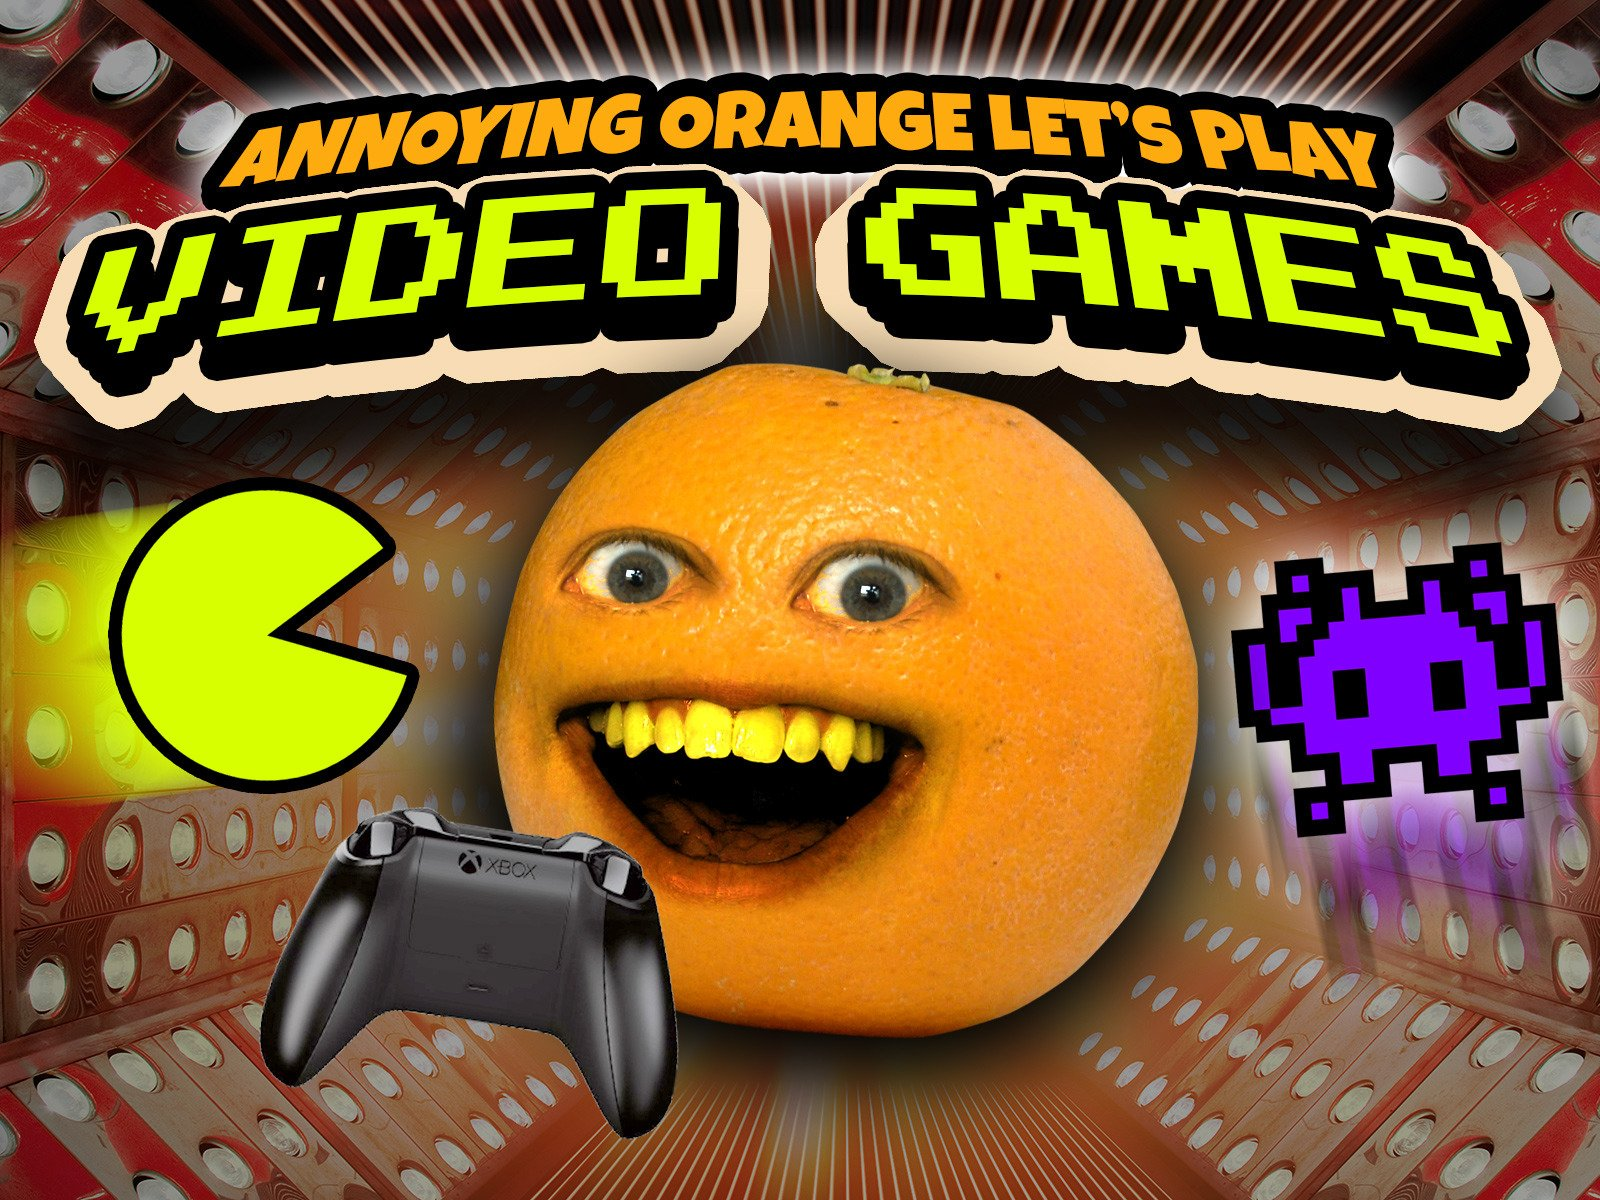 Clip: Annoying Orange Let's Play Video Games! - Season 1